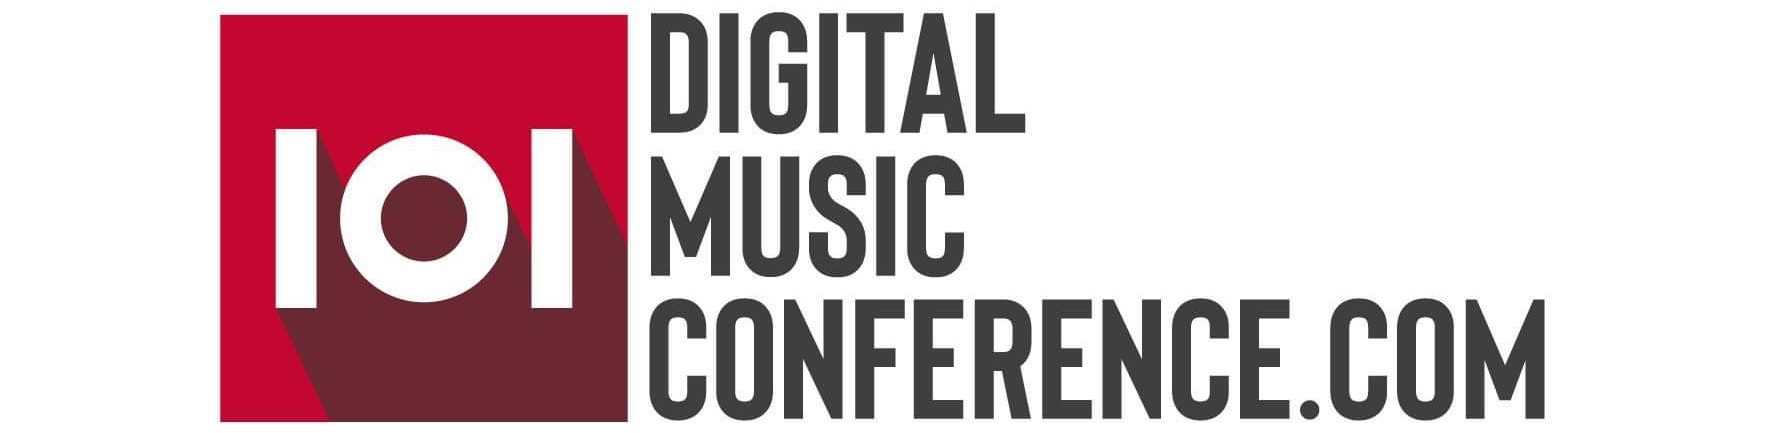 Digital Music Conference